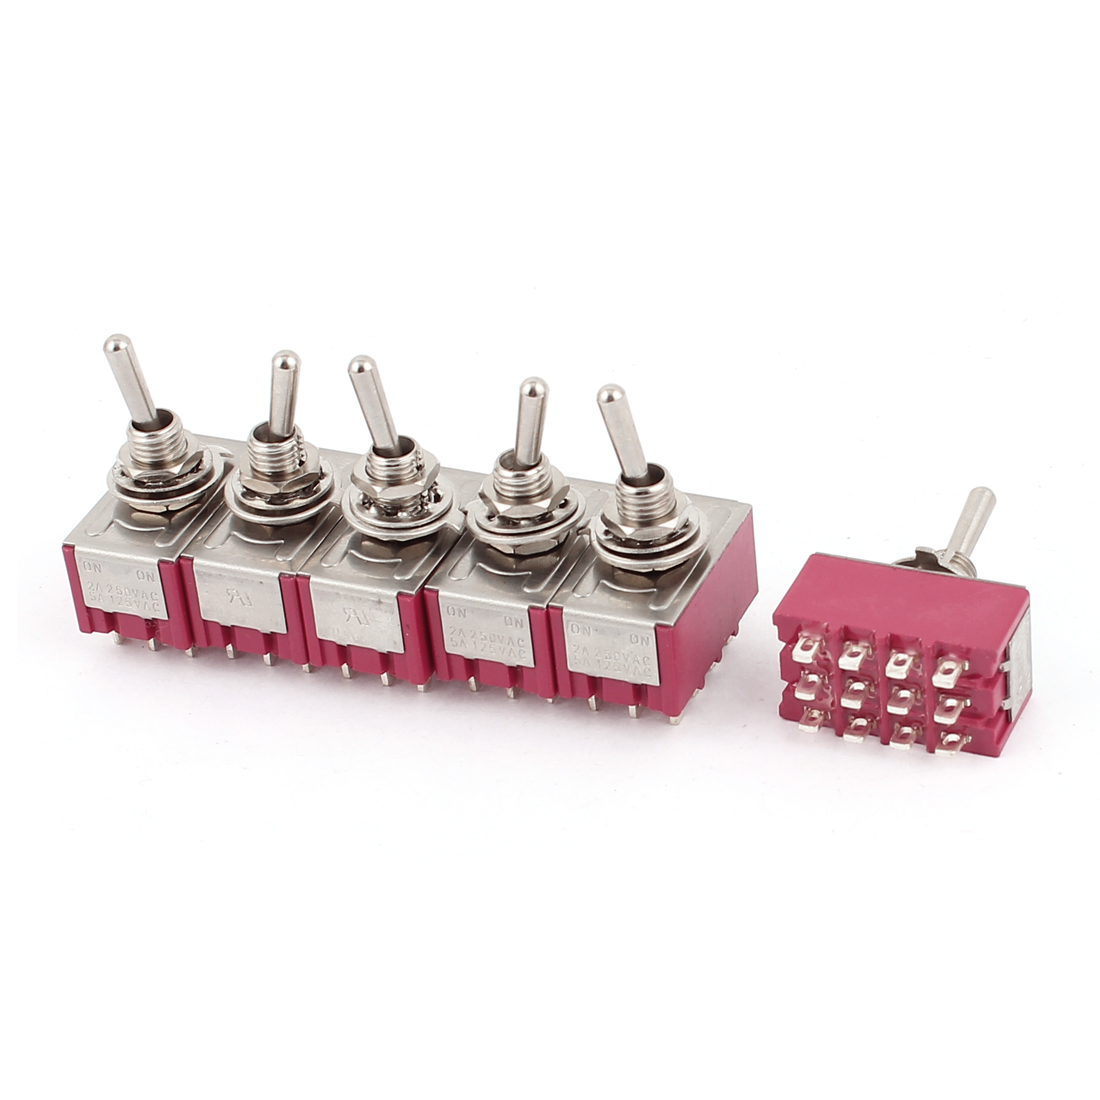 AC 250V/2A 125V/5A 12-Pin On/On 2 Position Miniature SPDT Toggle Switch 6Pcs Red